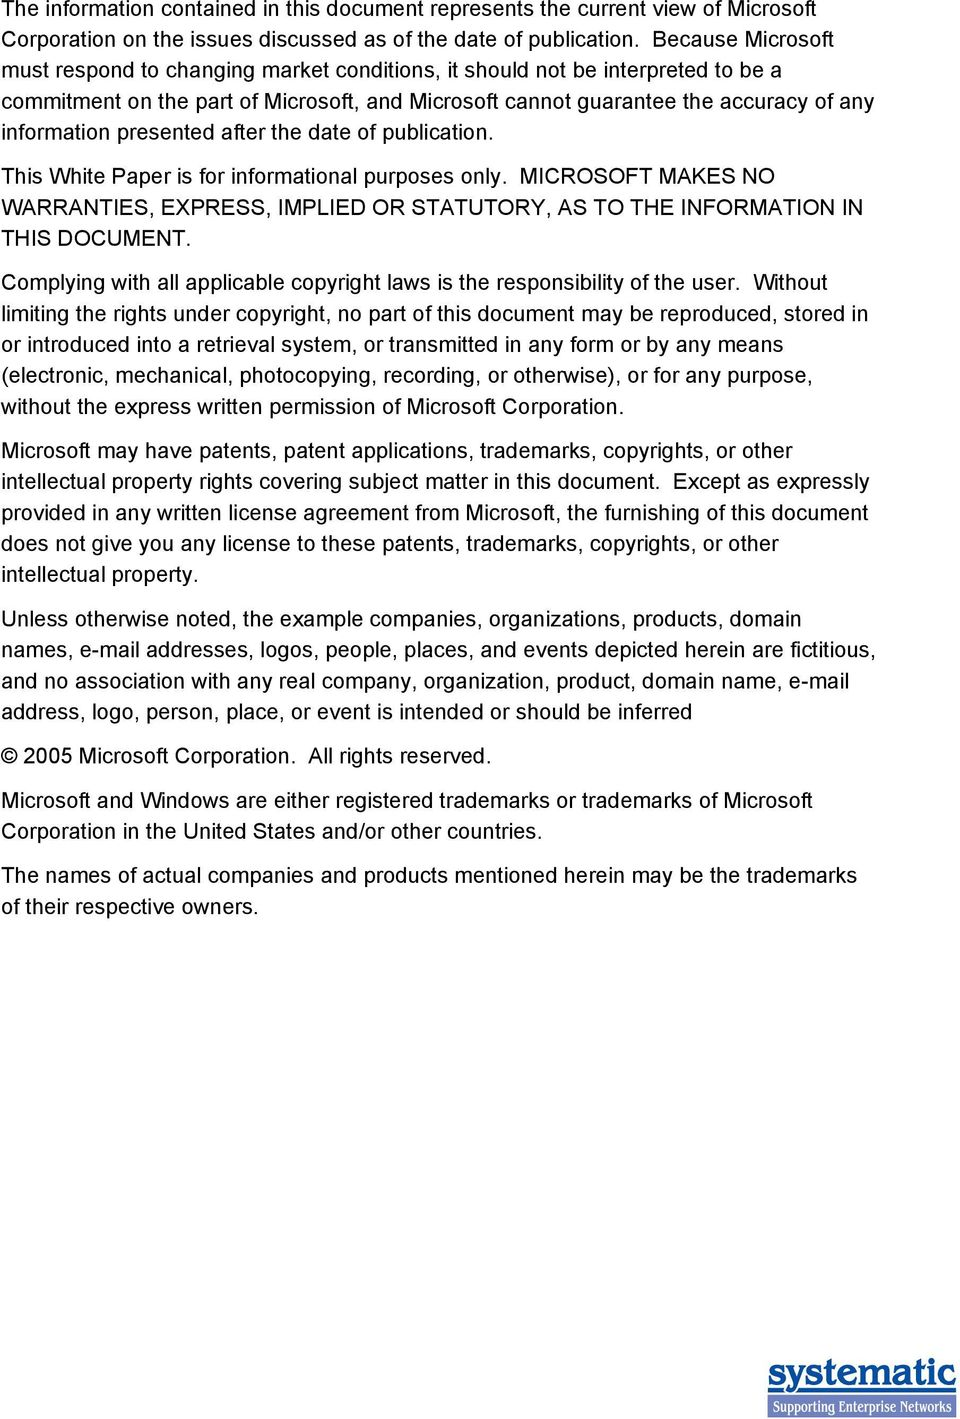 presented after the date of publication. This White Paper is for informational purposes only. MICROSOFT MAKES NO WARRANTIES, EXPRESS, IMPLIED OR STATUTORY, AS TO THE INFORMATION IN THIS DOCUMENT.